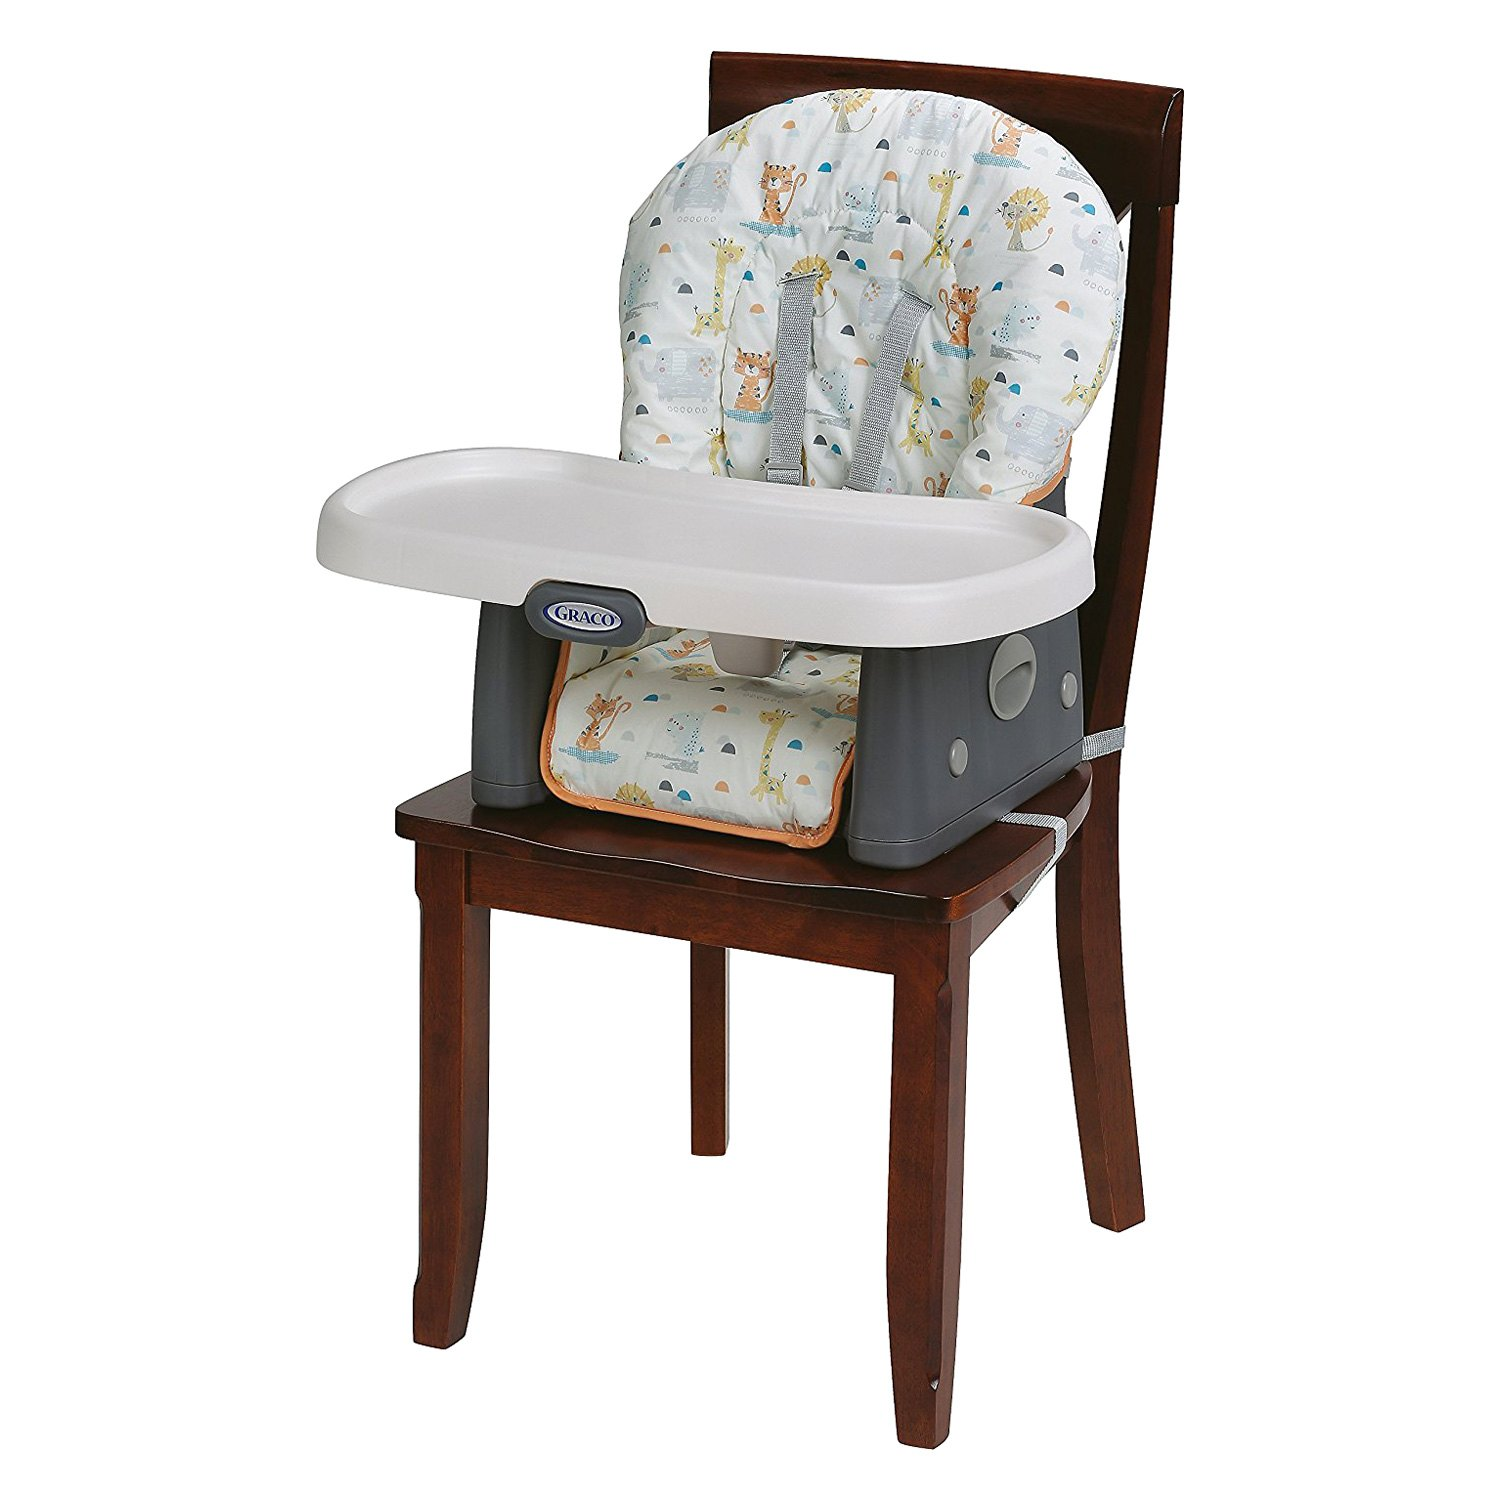 Graco Baby SimpleSwitch Highchair